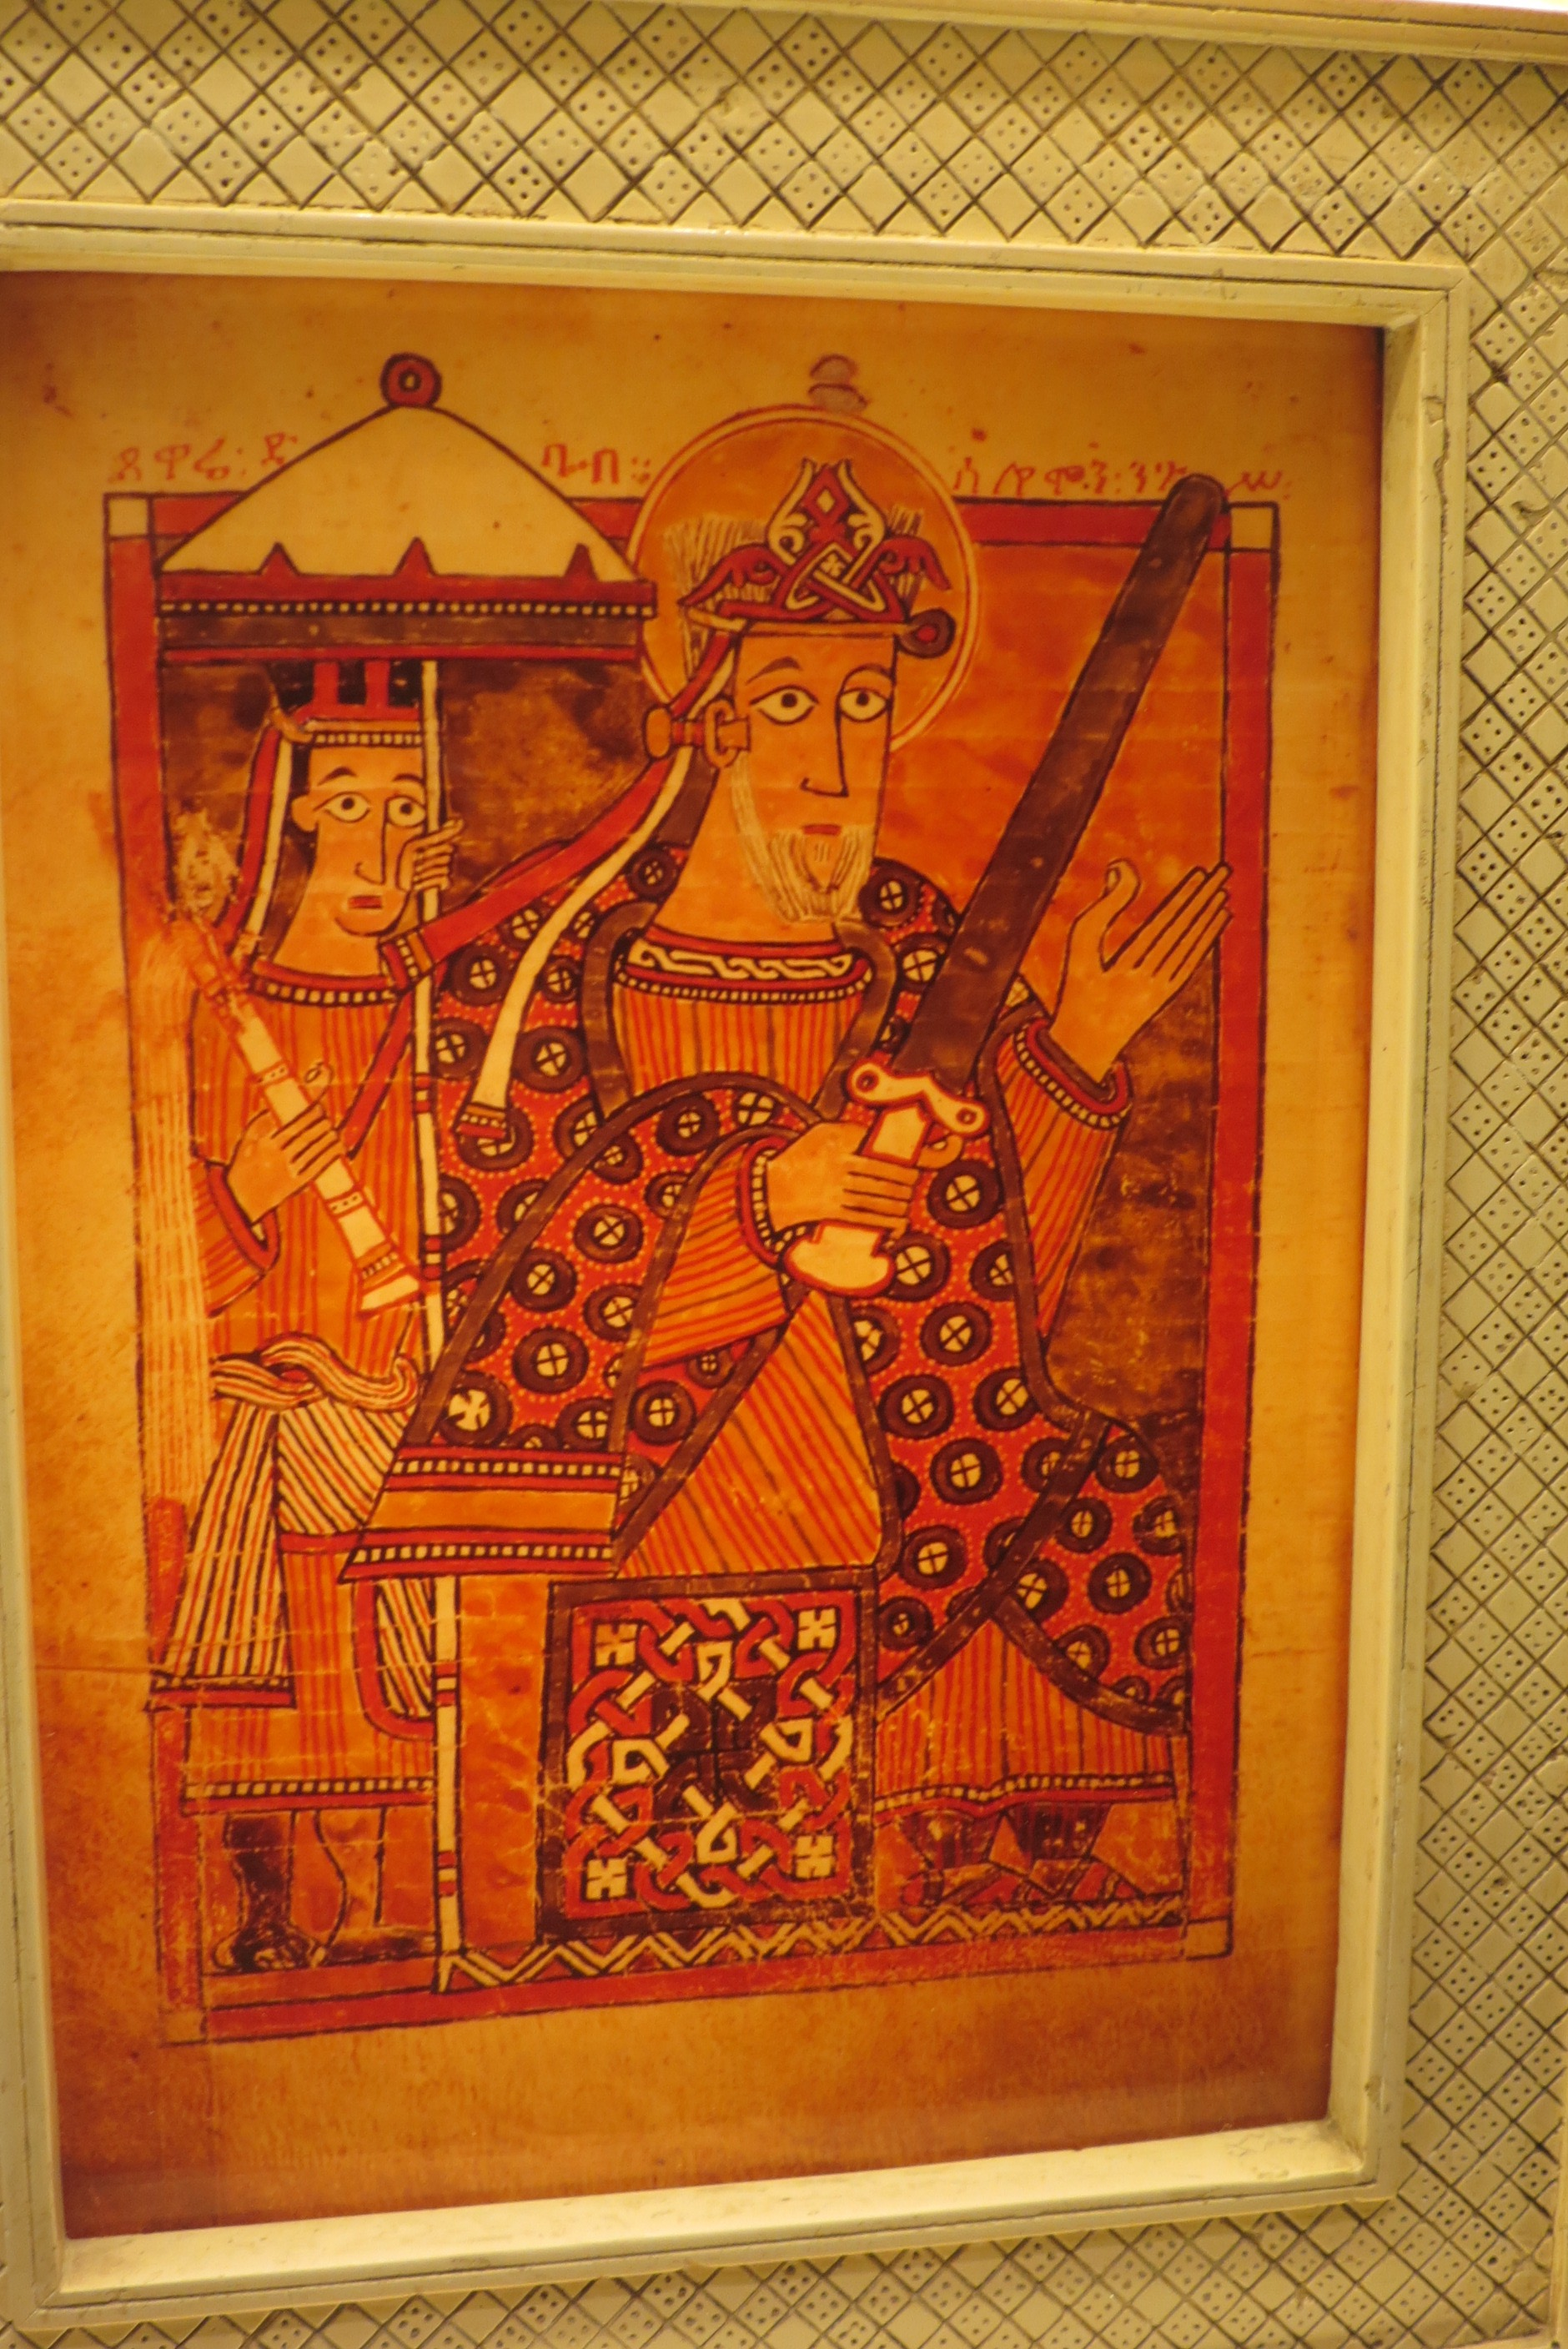 King Solomon and Queen of Sheba